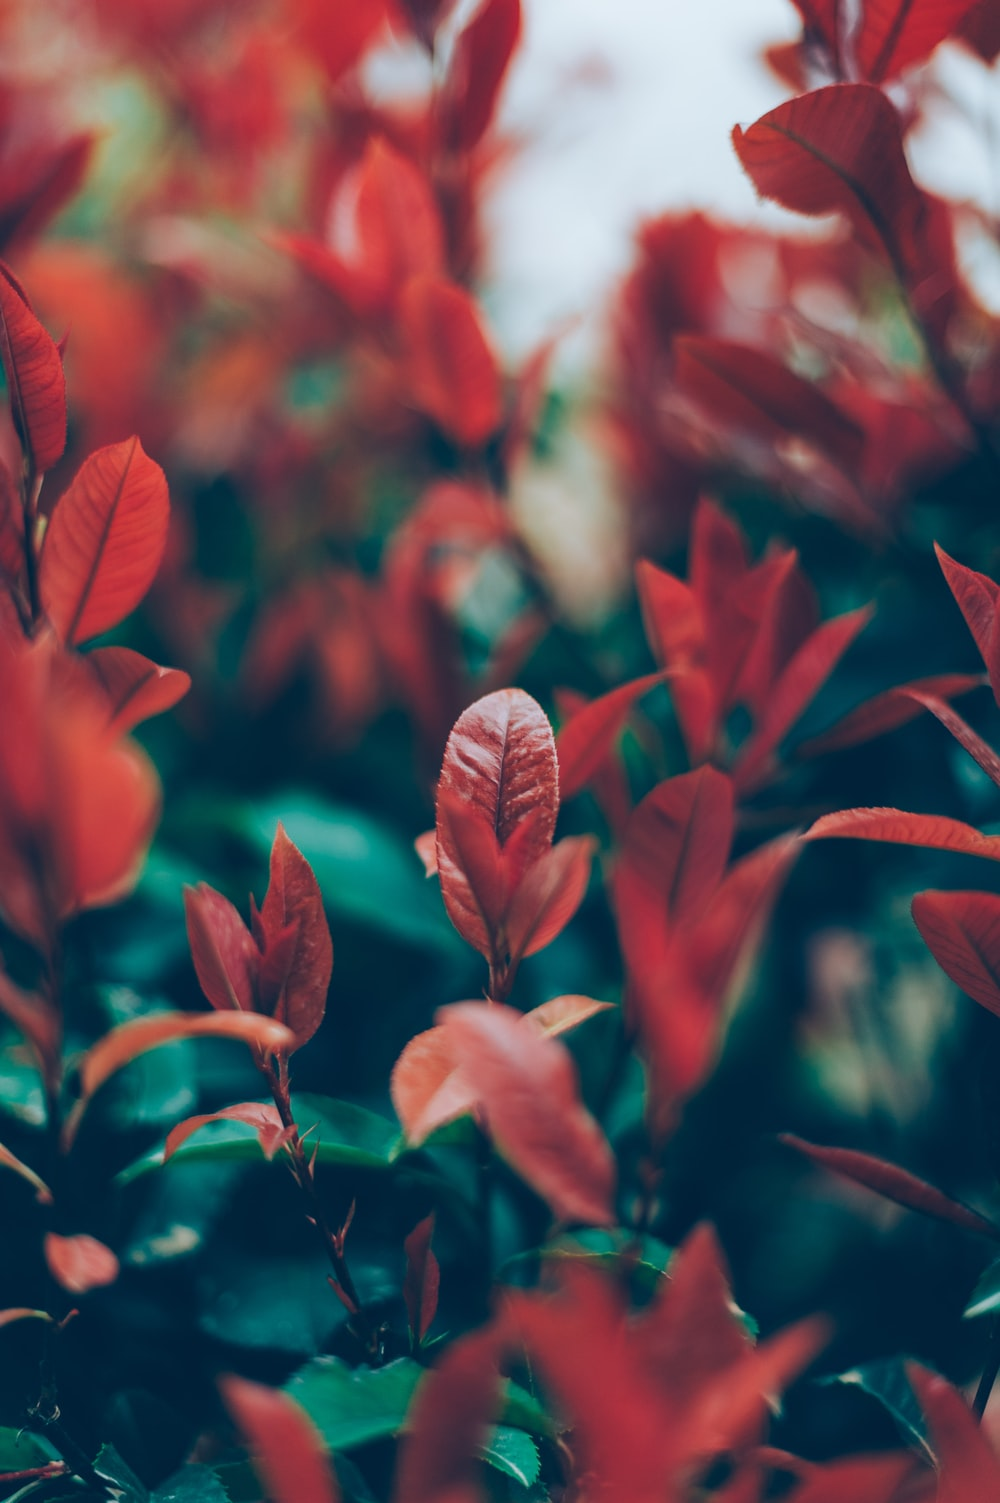 selective focus photography of red leafed plant